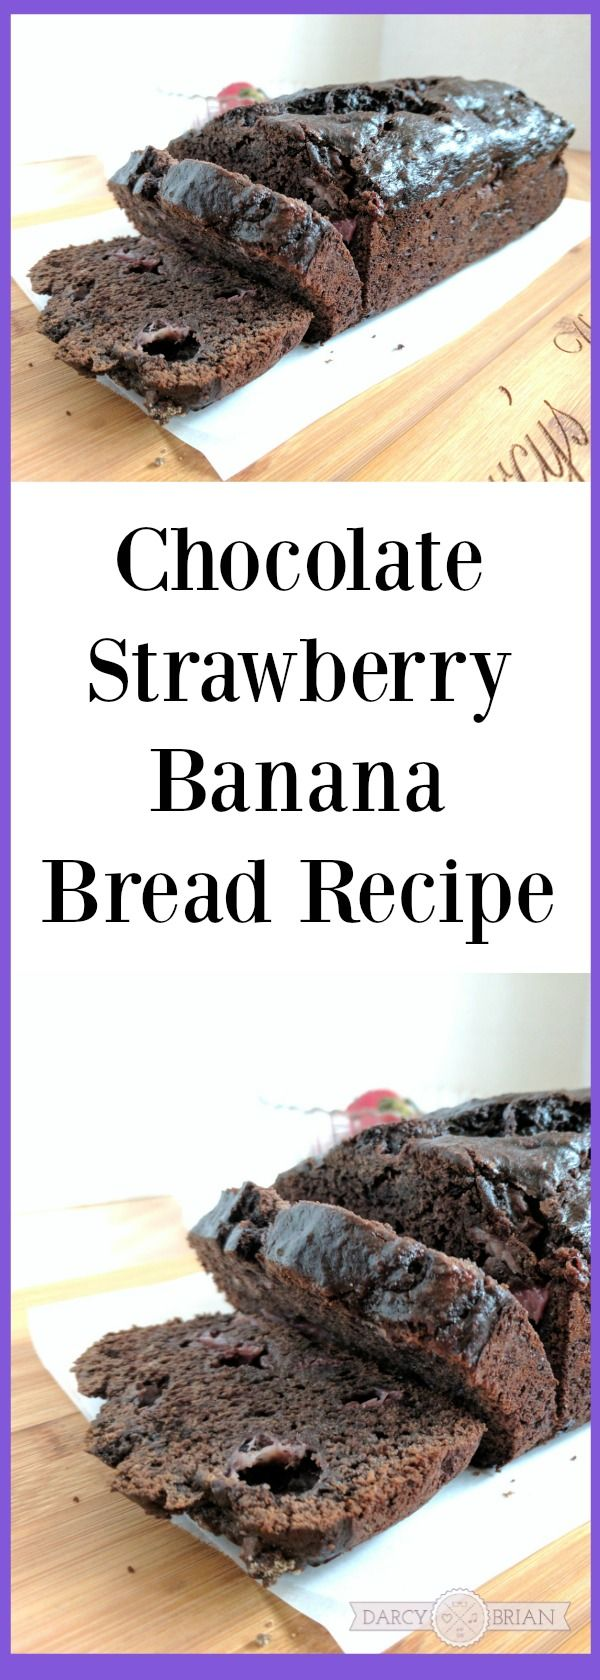 Looking for a delicious breakfast treat? Try making this Chocolate Strawberry Banana Bread recipe while also learning about Heifer's School Milk Feeding Program (AD). via @darcyz